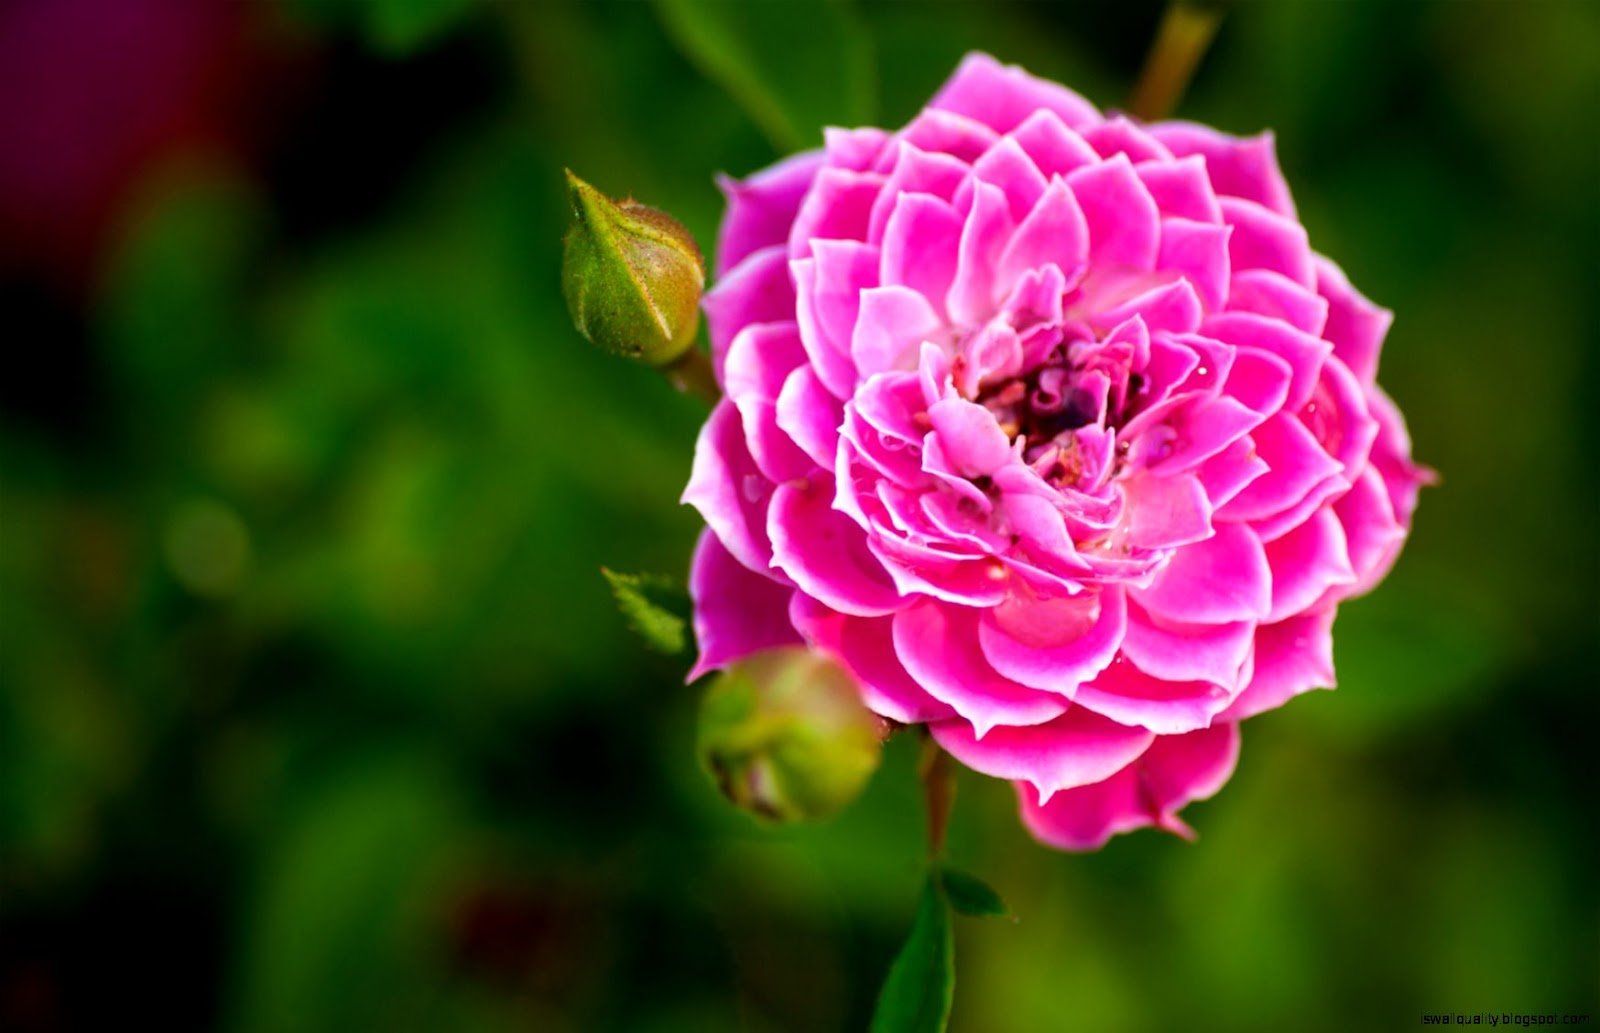 Wallpaper Hd Nature Flower Rose Pink Wallpapers Quality